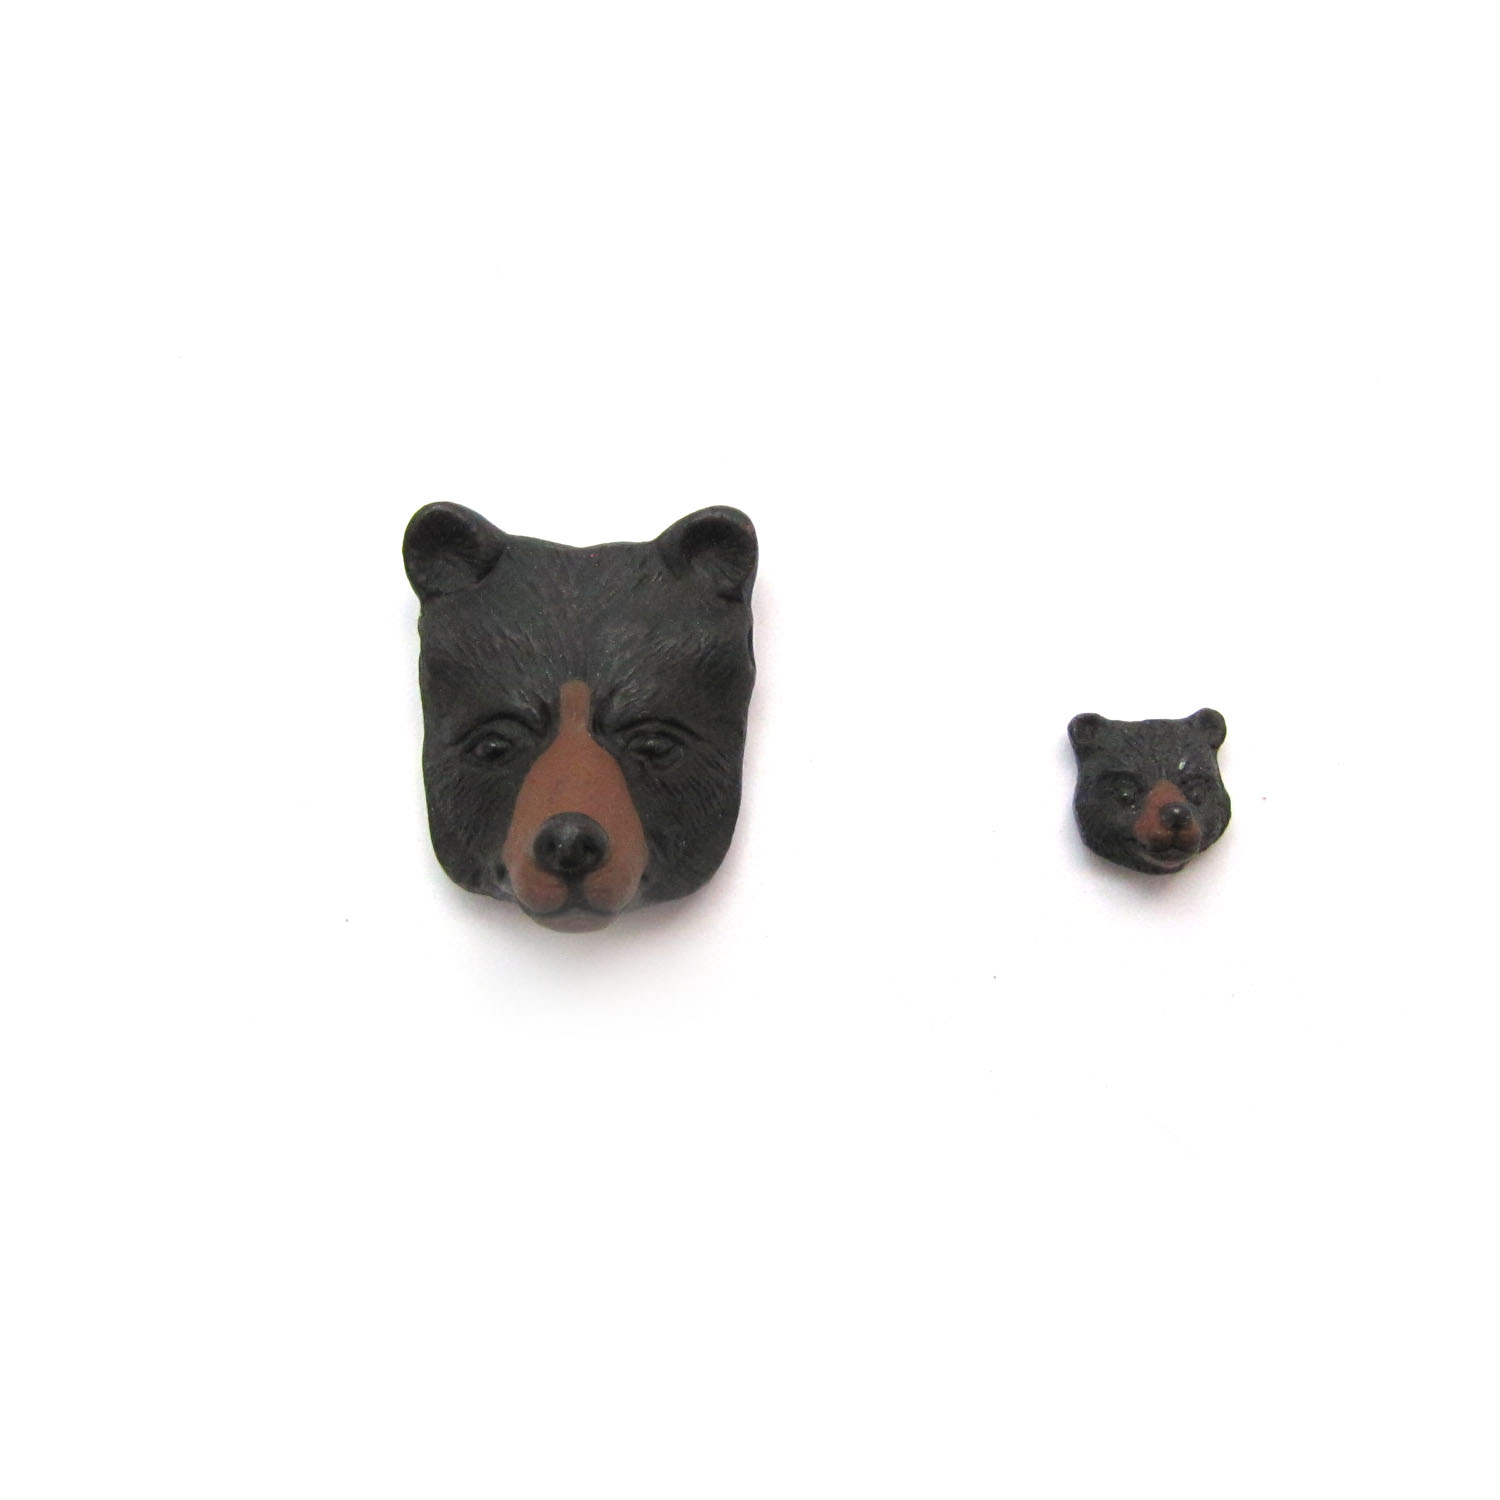 bear face ceramic beads large and small